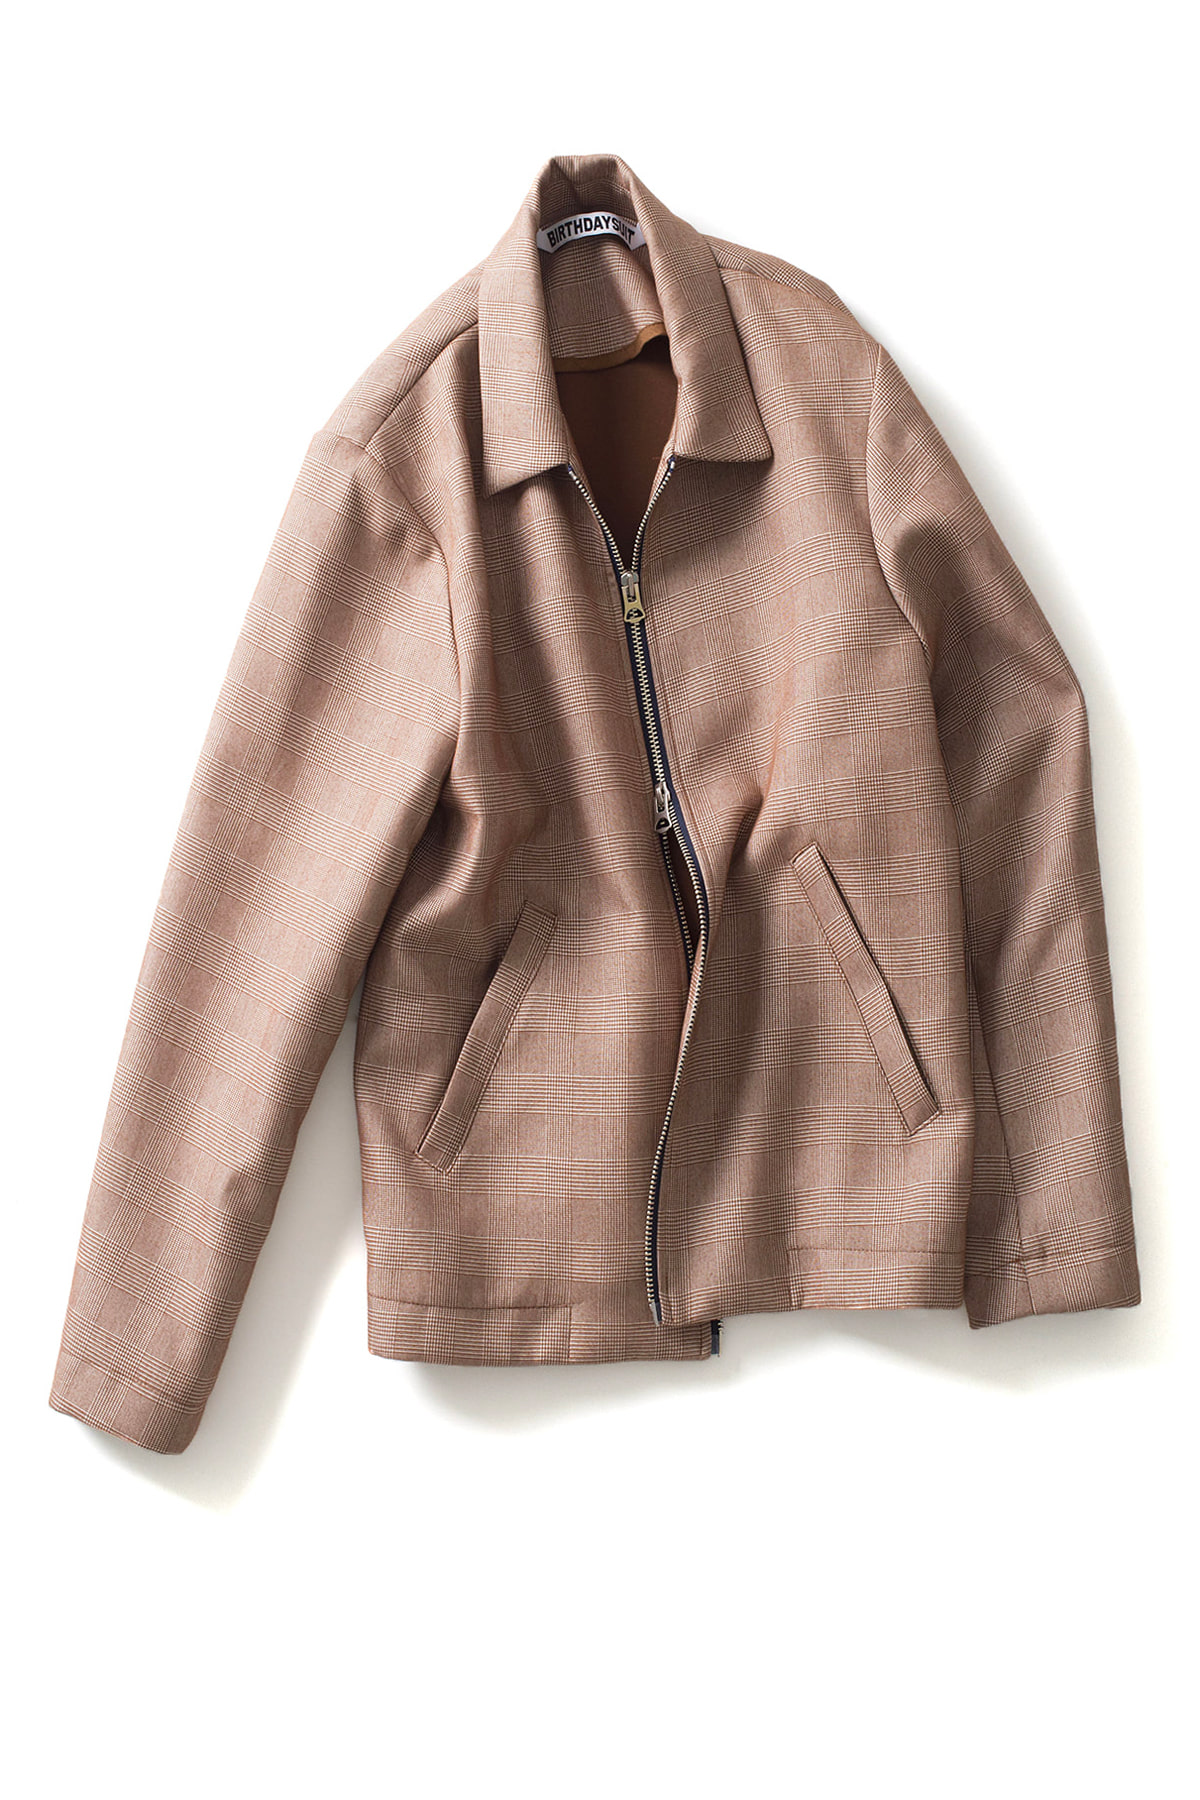 BIRTHDAYSUIT : 2-Way Blouson (Brown Glen Check)